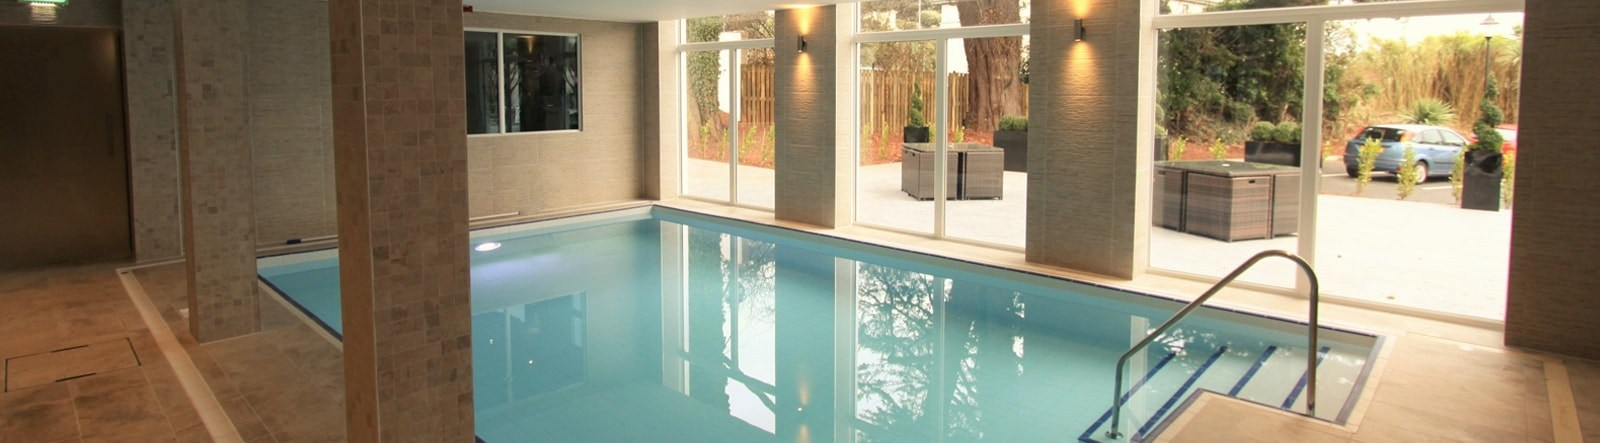 Special Offers at The Belgrave sands Hotel & Spa image